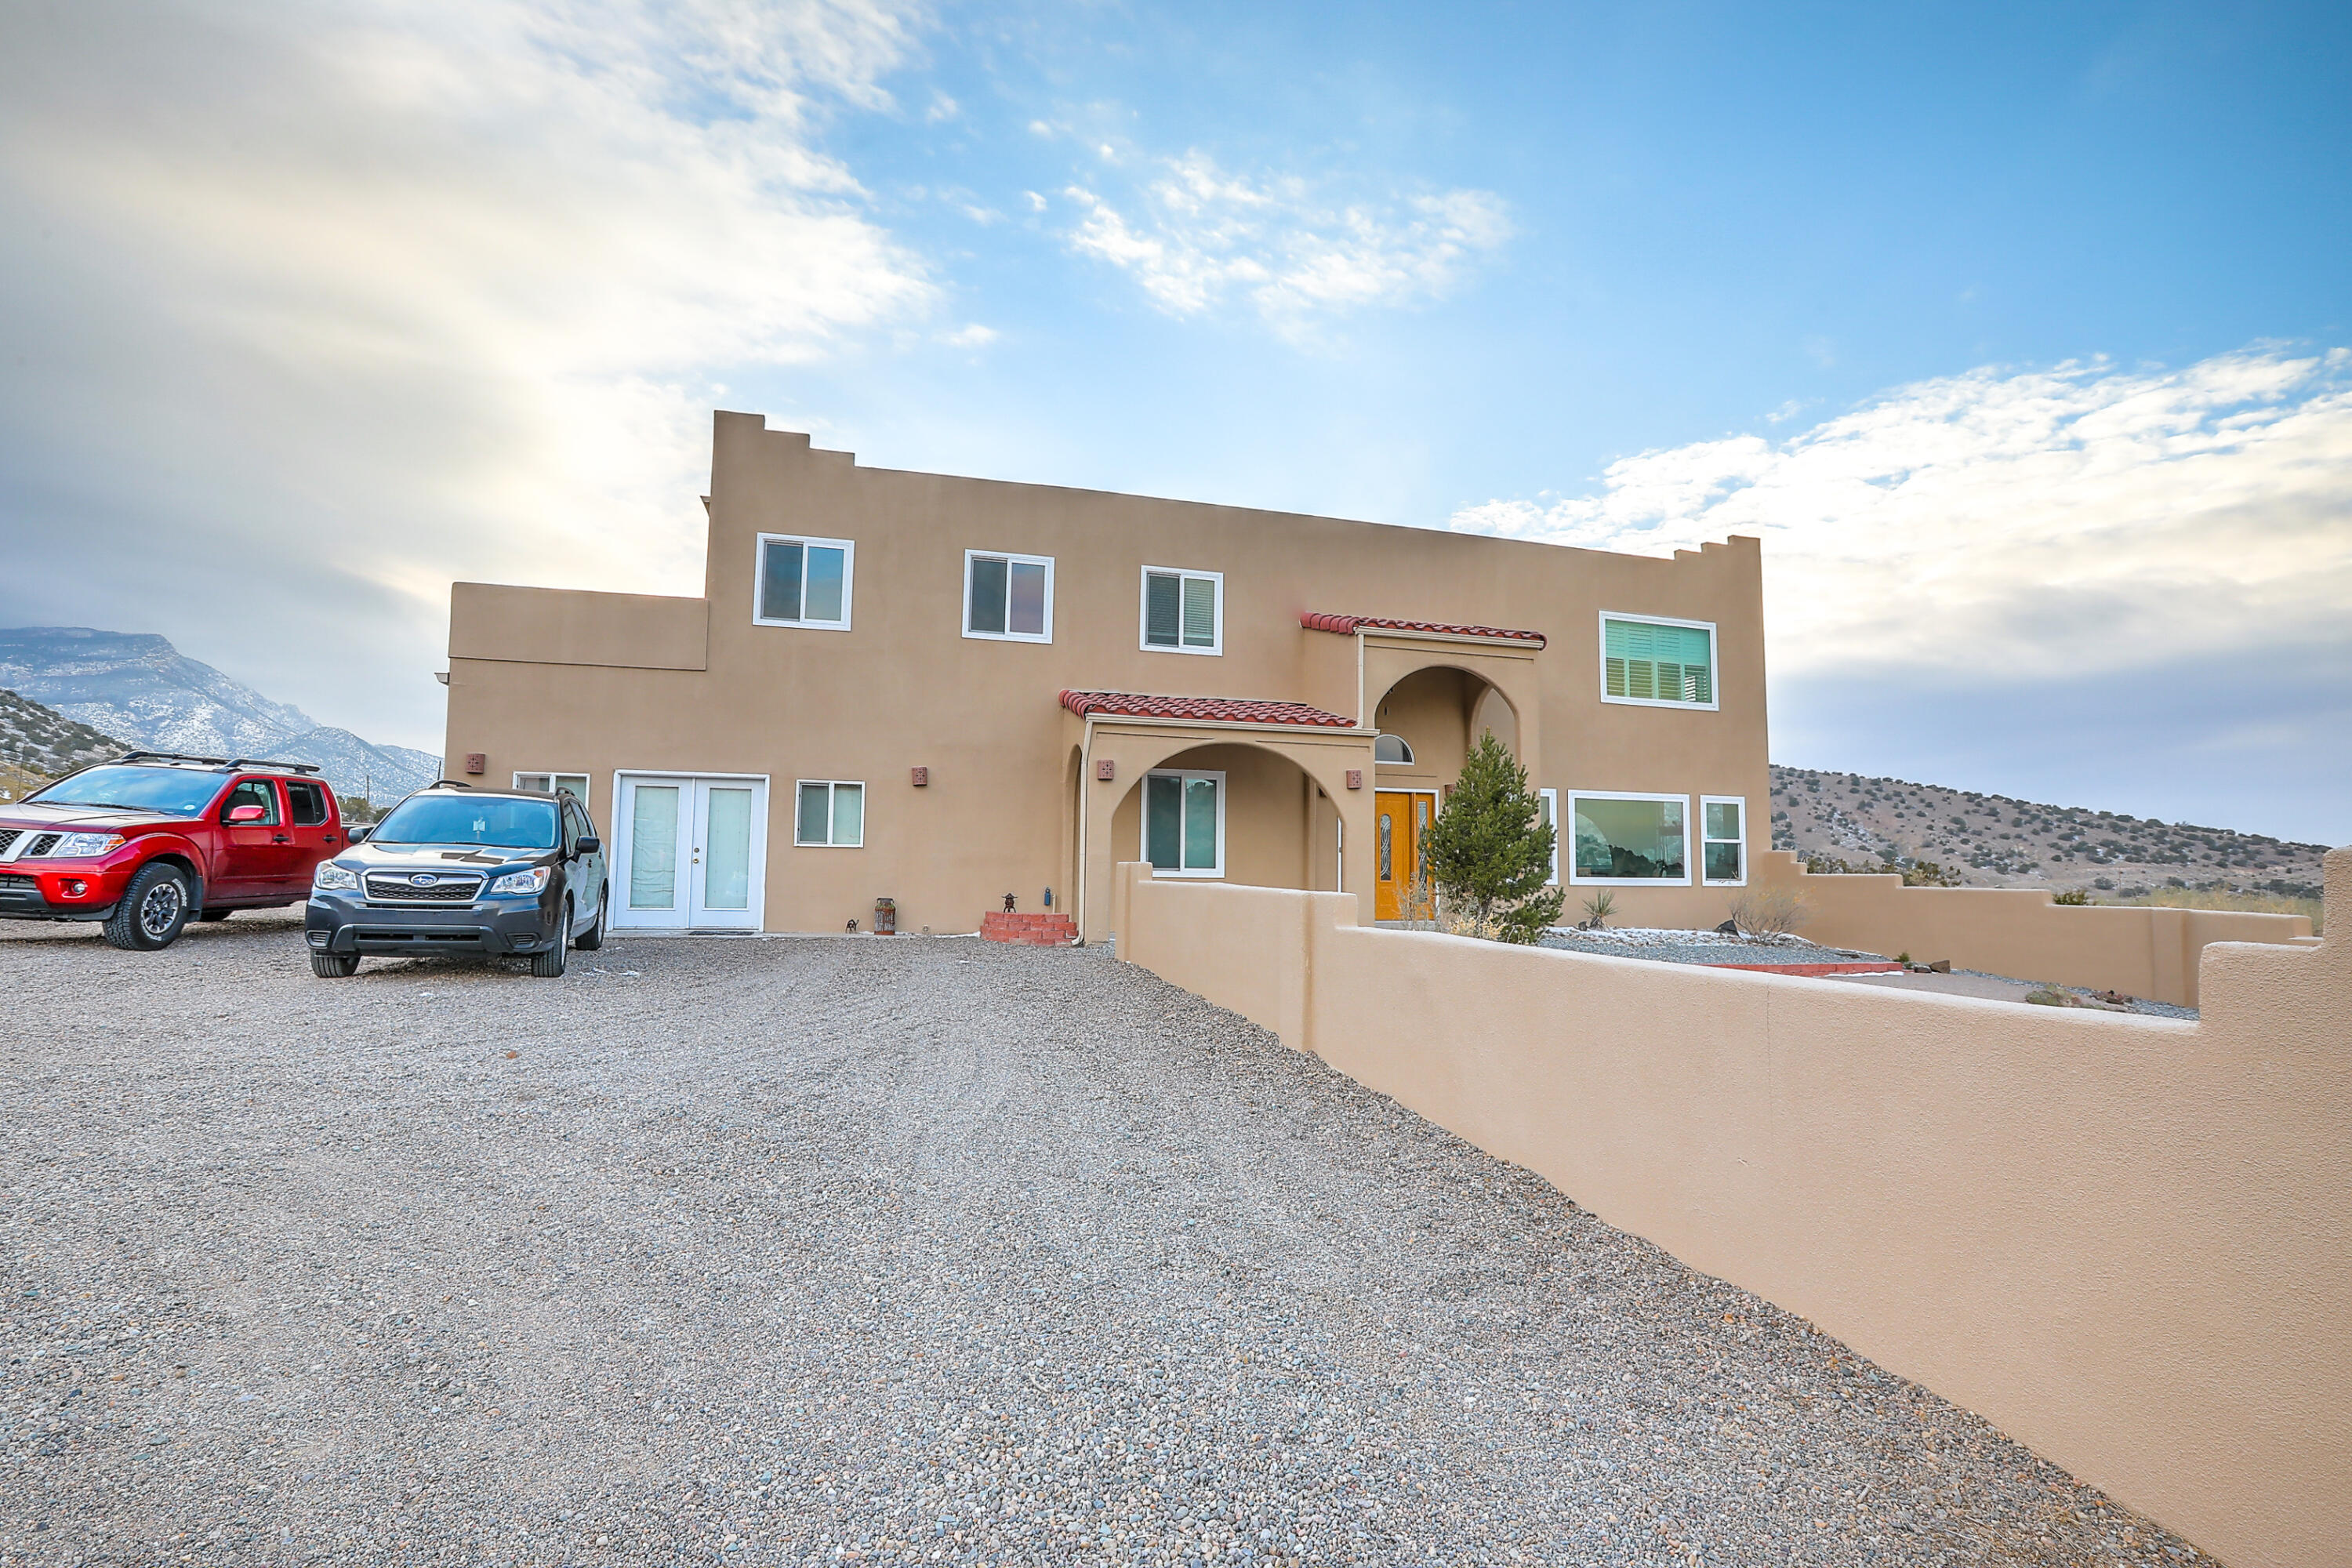 Spectacular 3,500 sf contemporary Placitas home designed with special features for the entire Family!This 1.6 acre parcel has terrific southern views of Sandia Peak, West to the Jemez Mountains and Cabezon, or Santa Fe to the North for everyone to enjoy. Complemented by the spacious and well planned living areas inside, this home may be the home you have dreamed could meet your needs in so many ways.